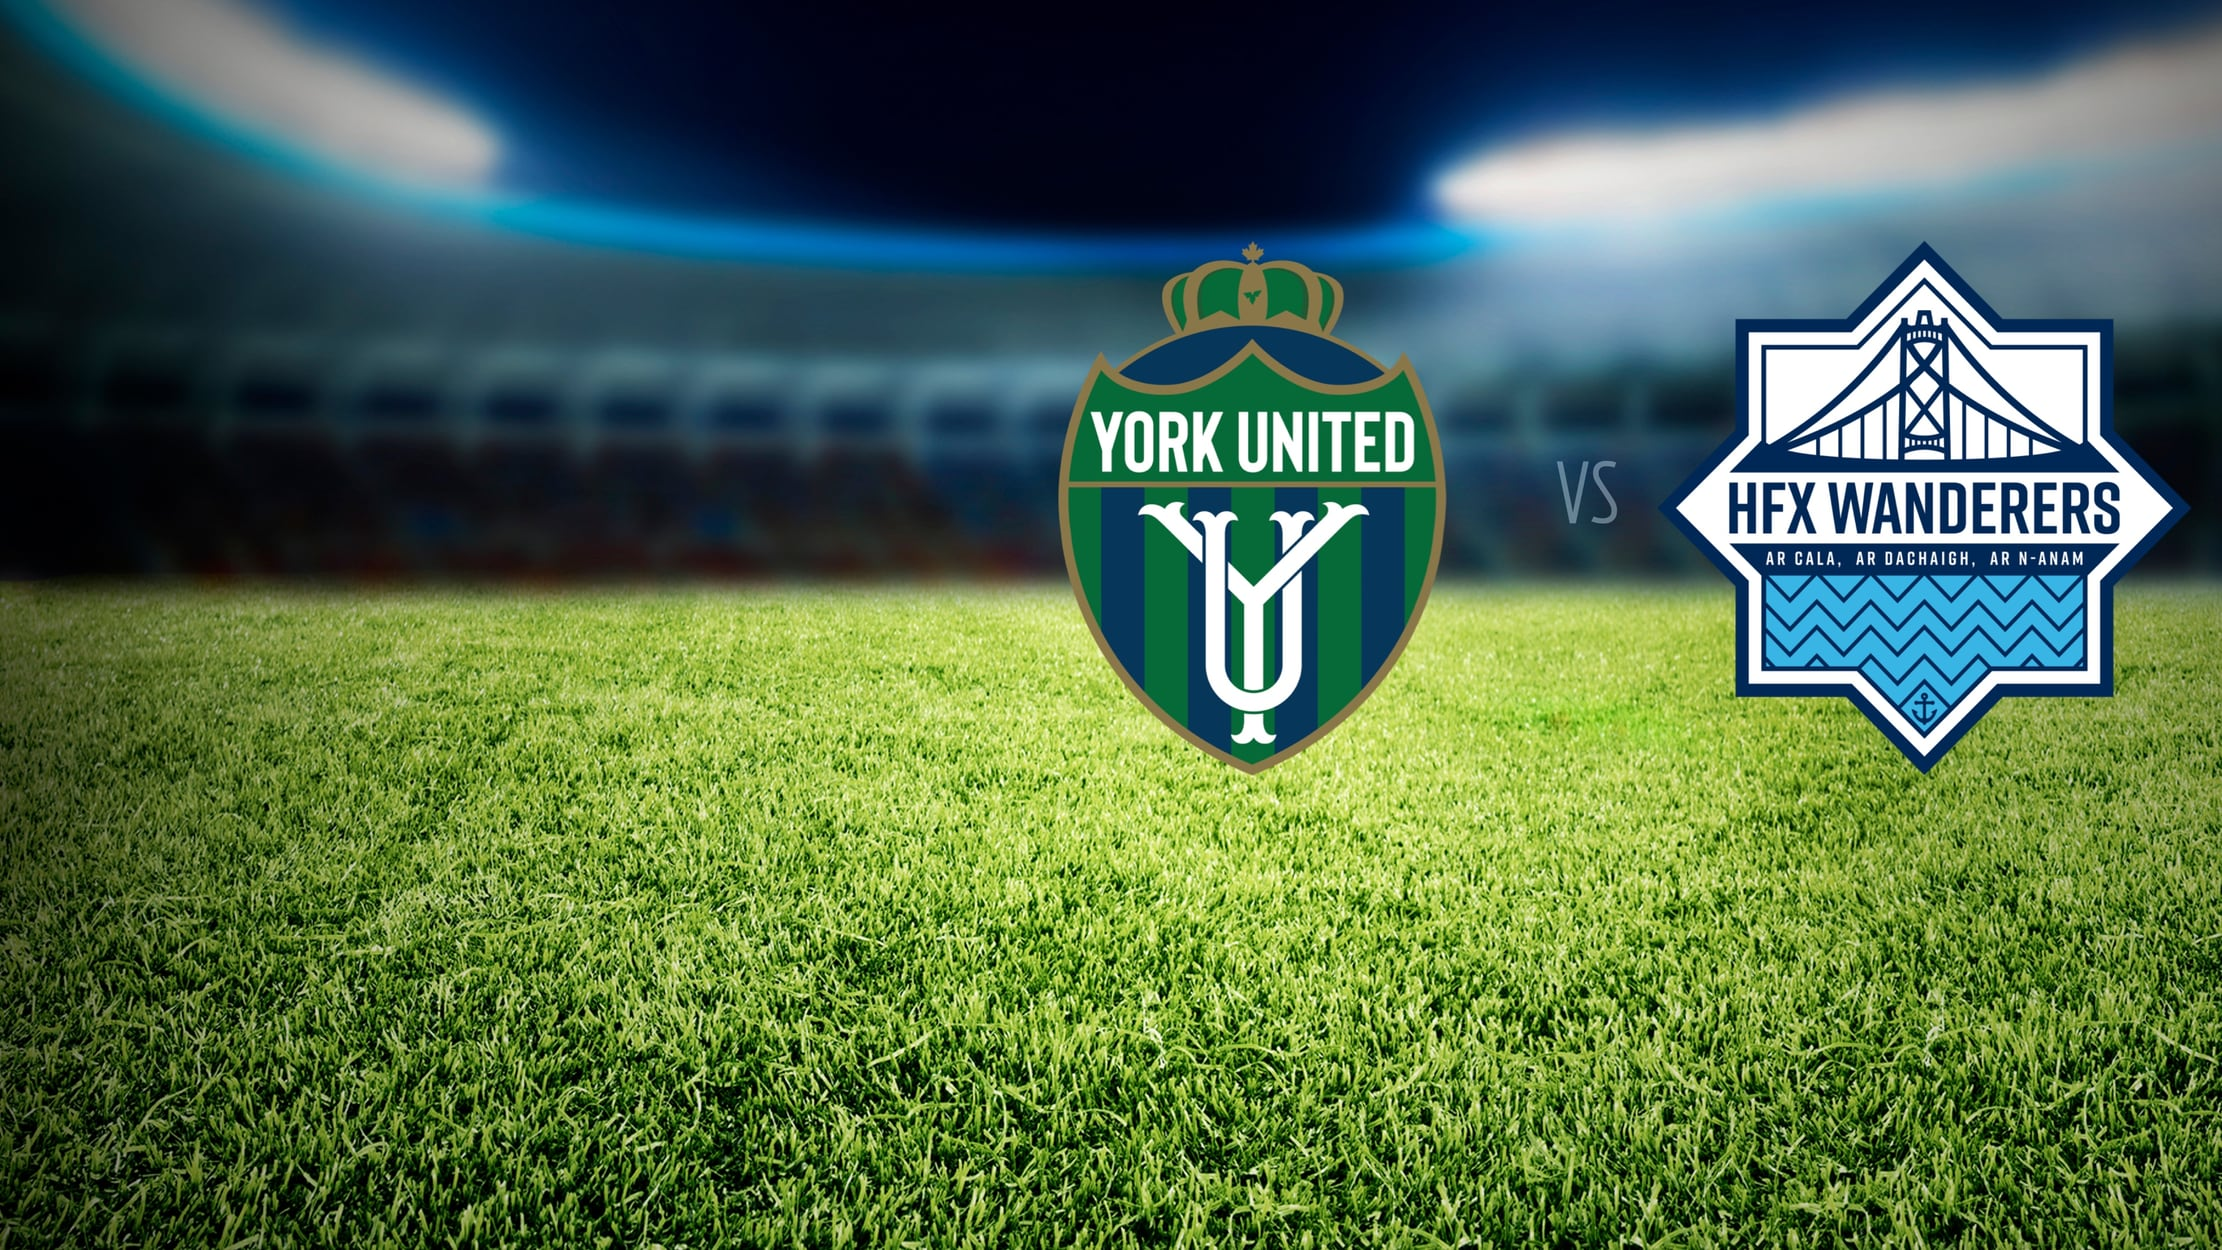 Canadian Premier League Soccer - York Unite FC at HFX Wanderers FC seriesDetail